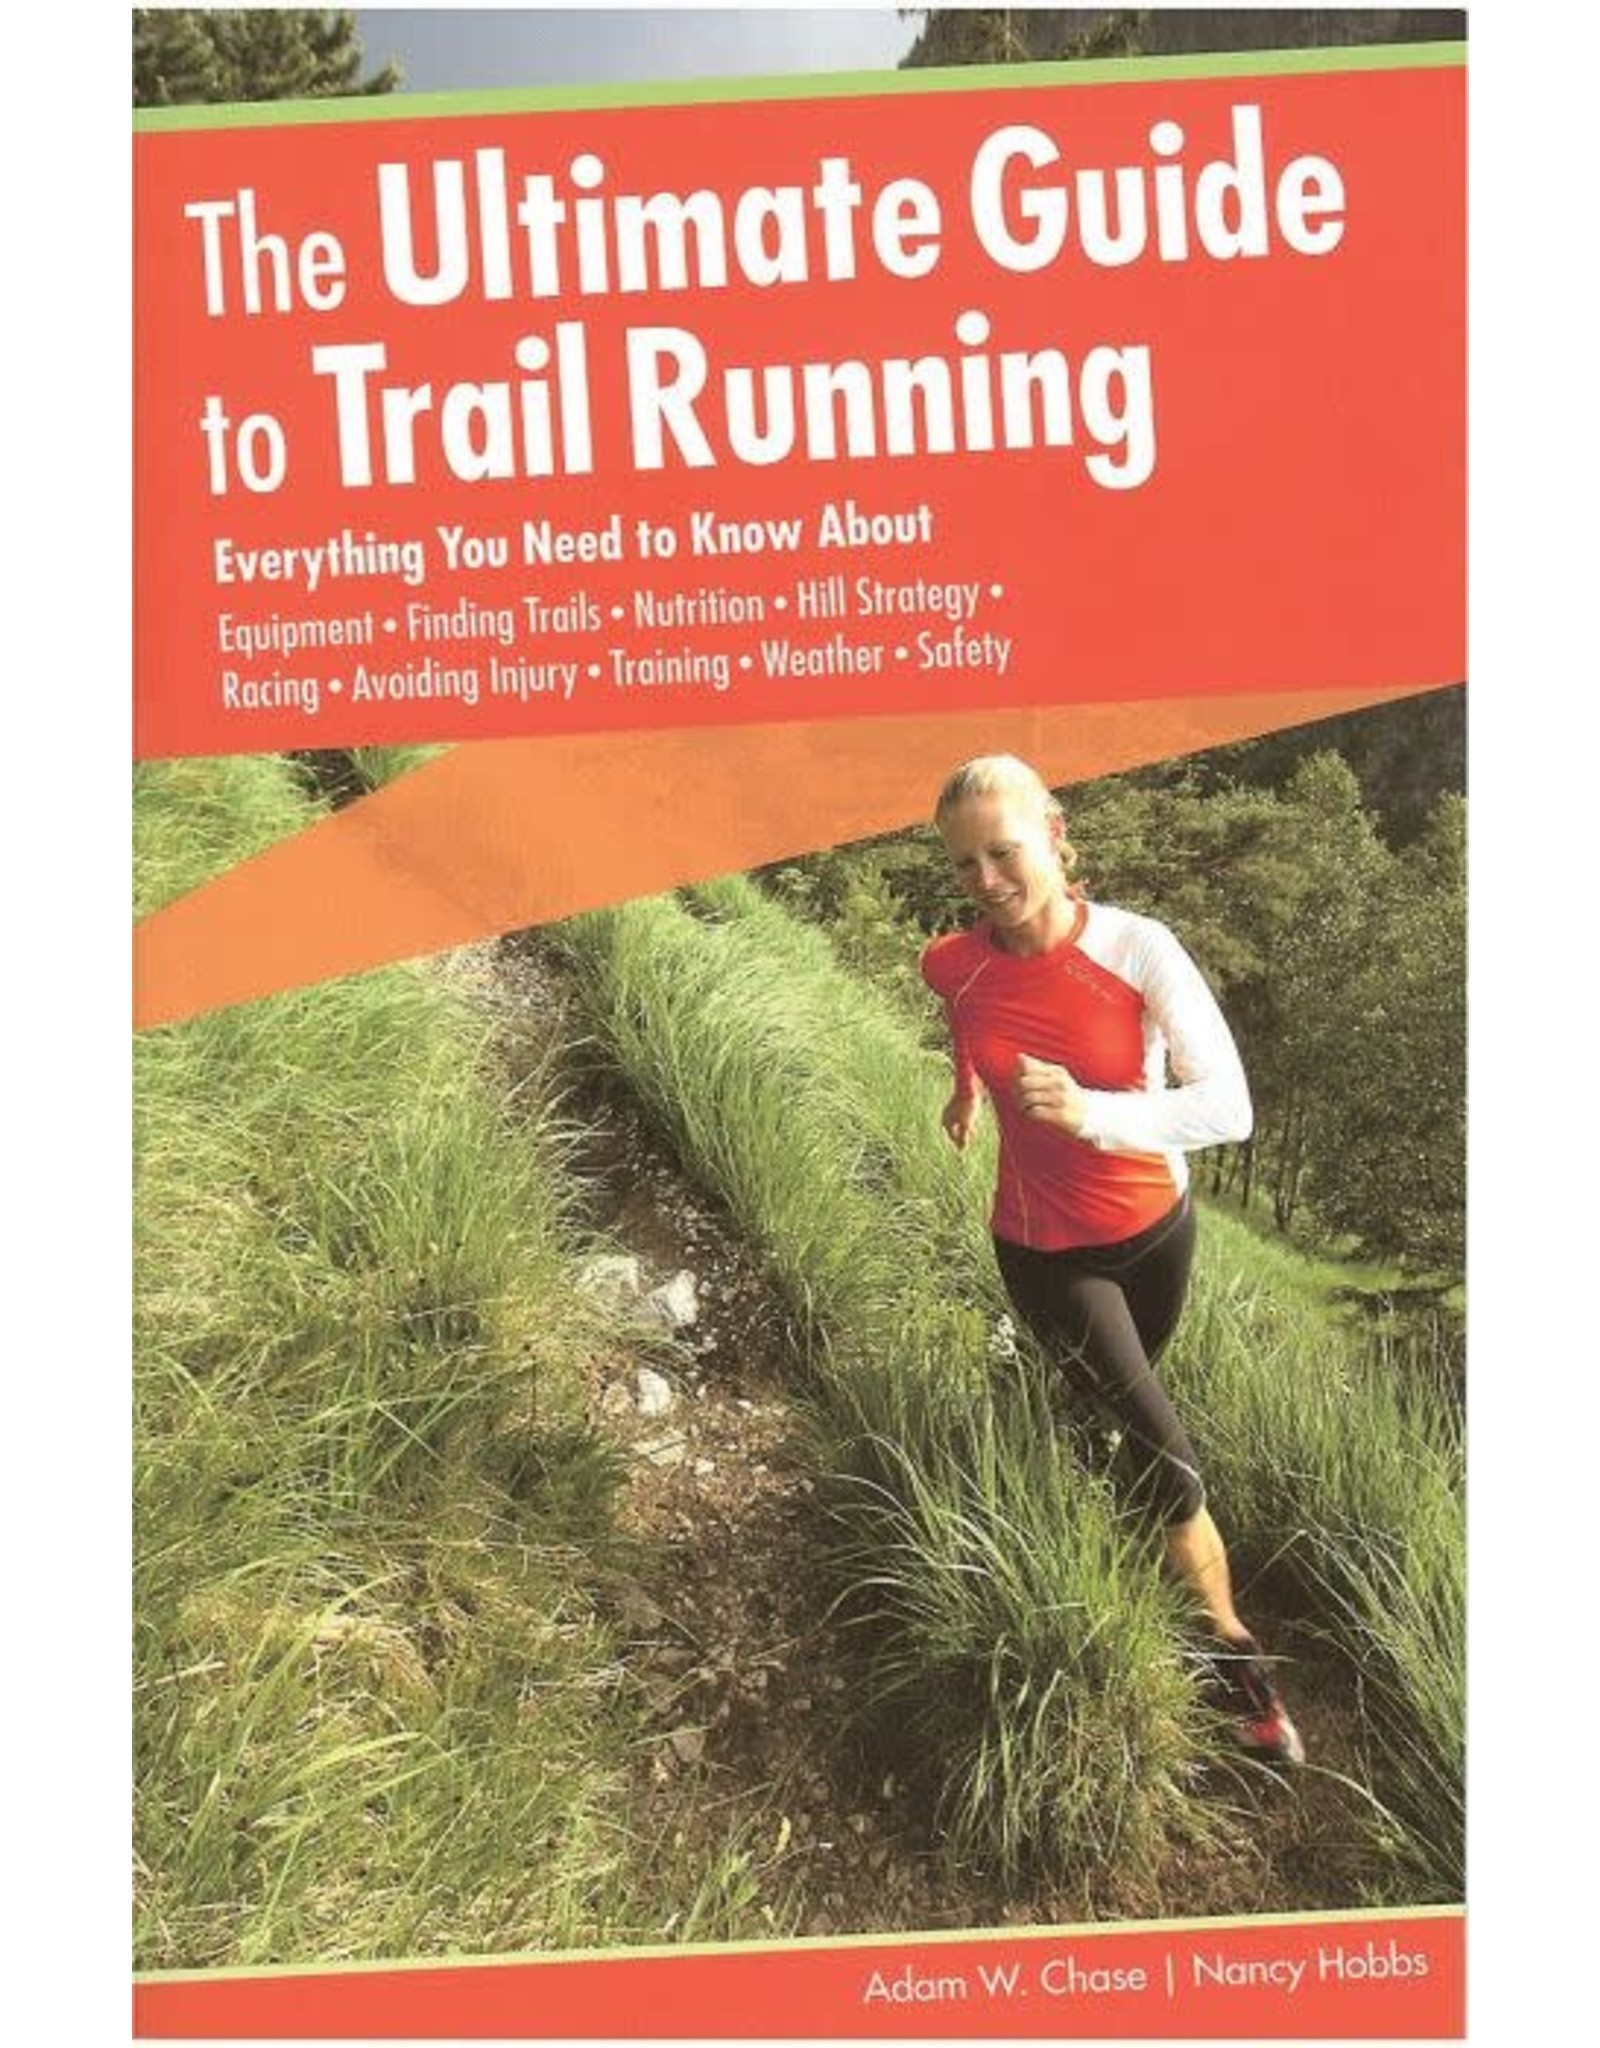 NATIONAL BOOK NETWRK The Ultimate Guide to Trail Running by Chase & Hobbs